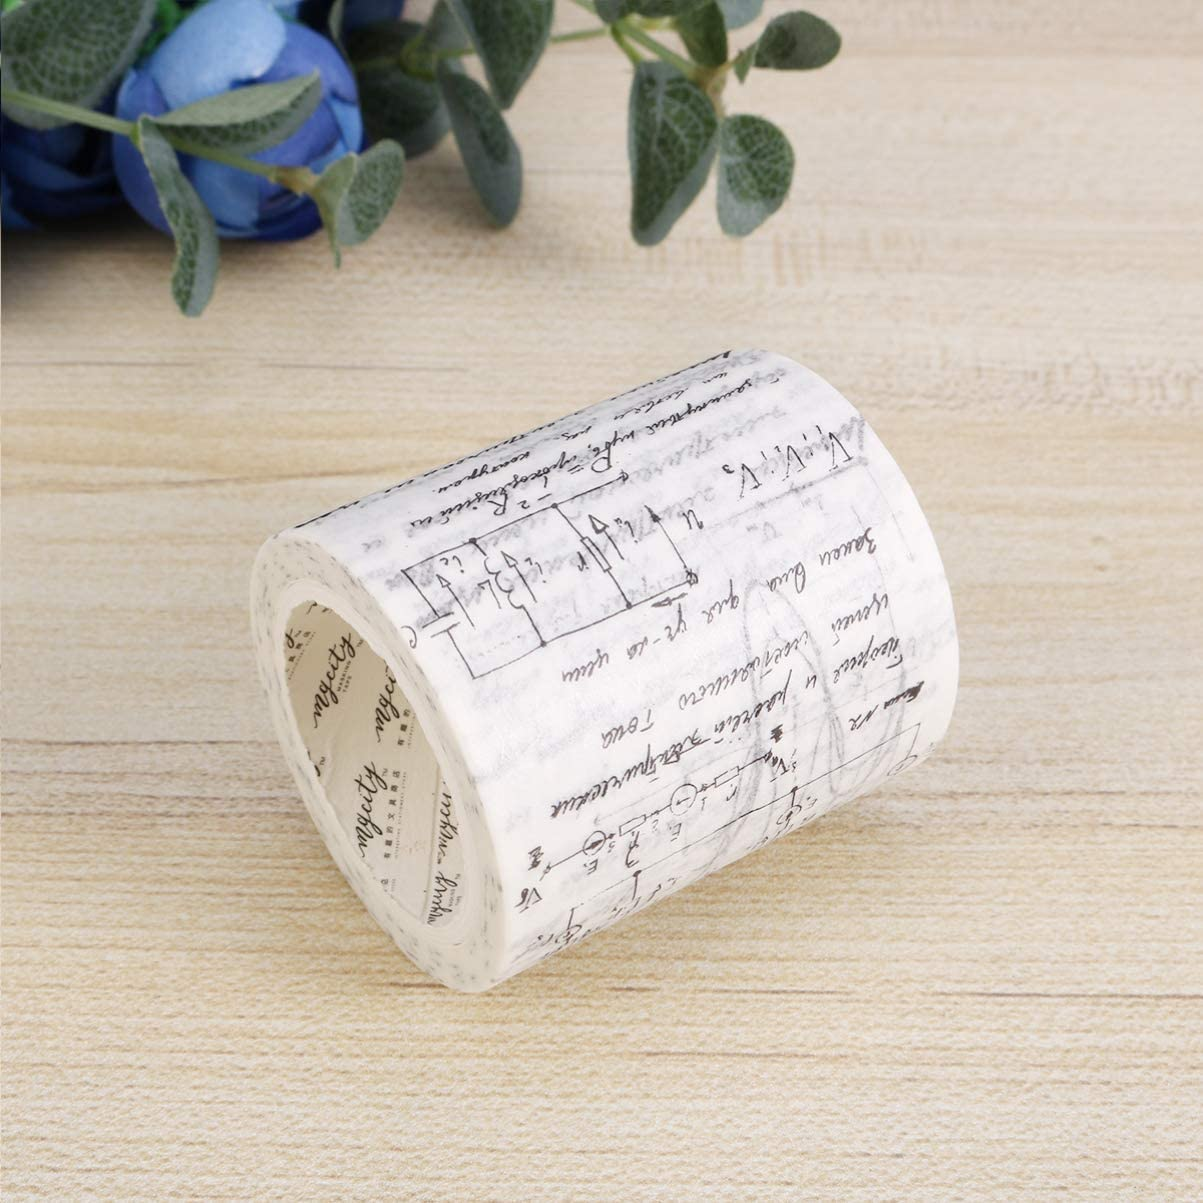 SUPVOX Vintage Washi Tape Wide Sticky Paper Tape Decorative Washi Masking Tape for Planner Notebook Diary Bullet Journal Scrapbooking Newspaper